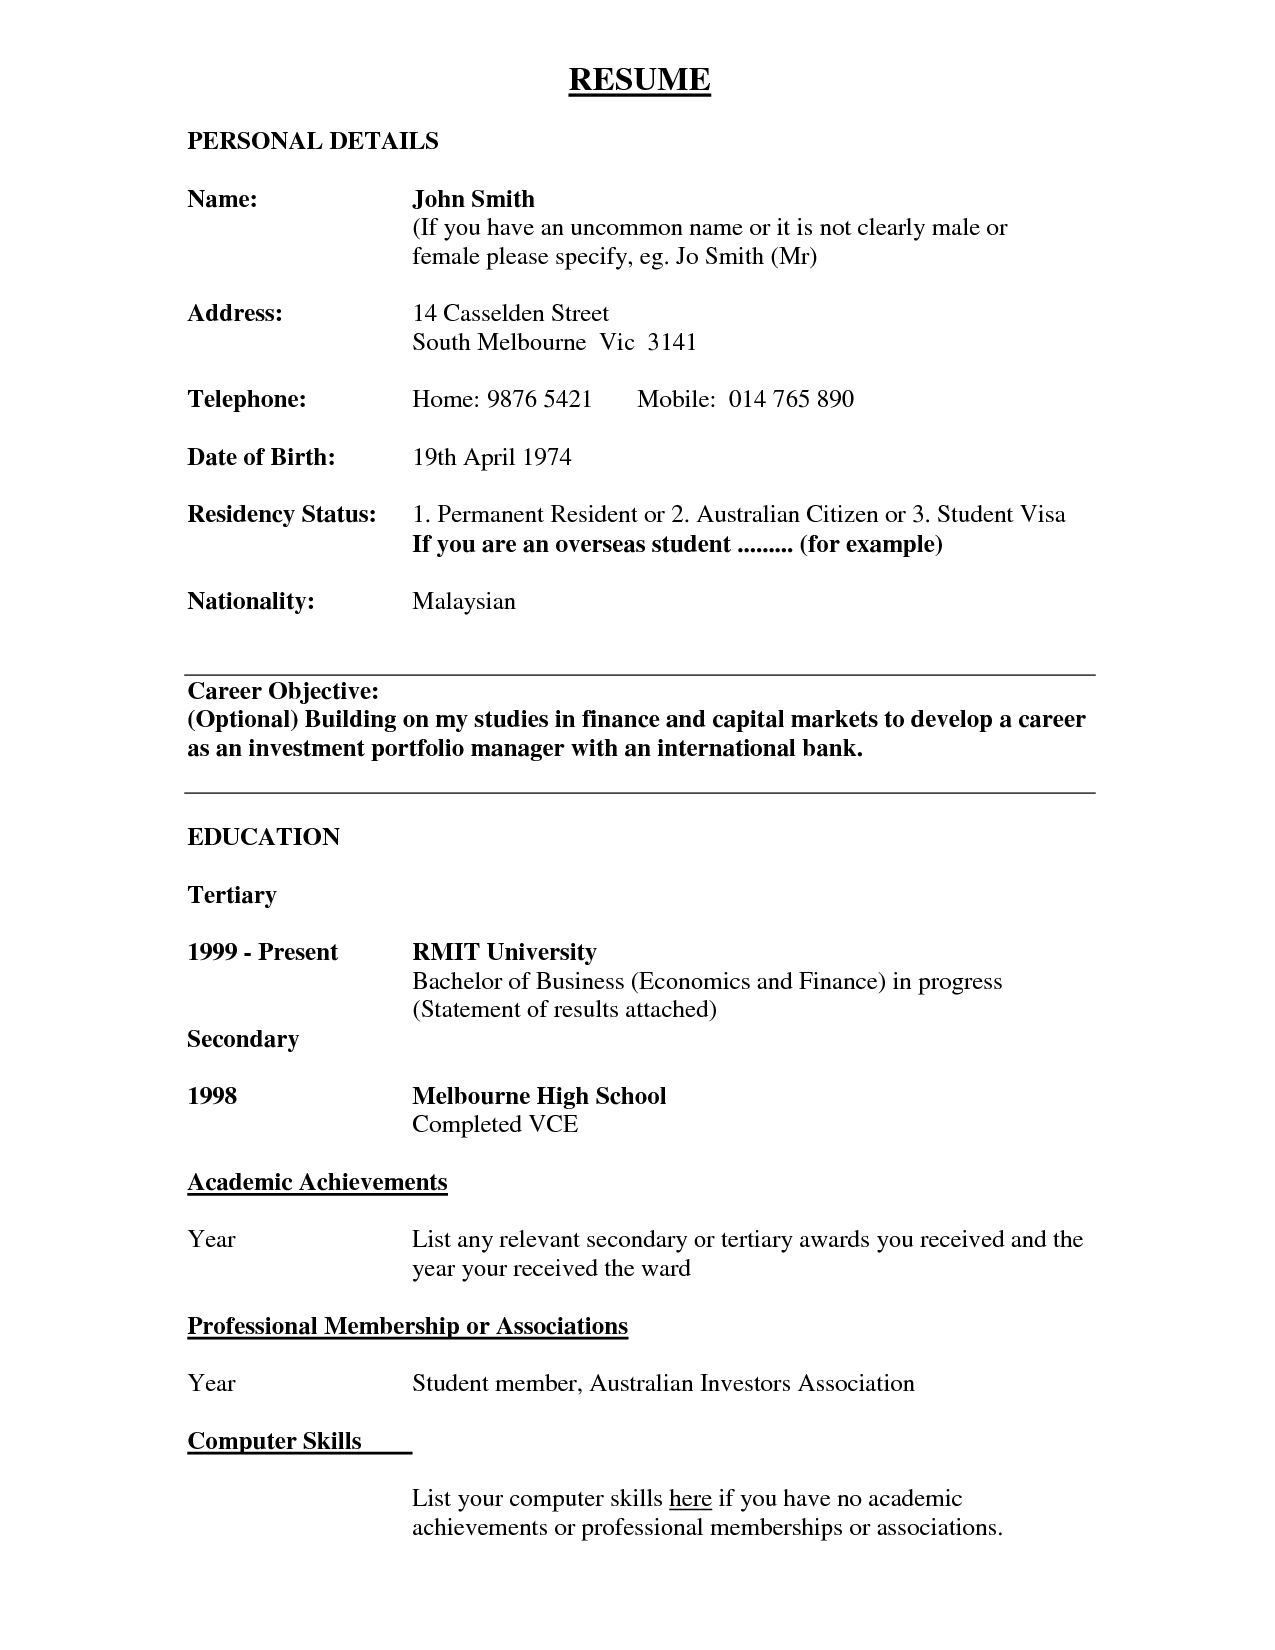 Sample Resume For Bank Teller With No Experience - http://www.resumecareer